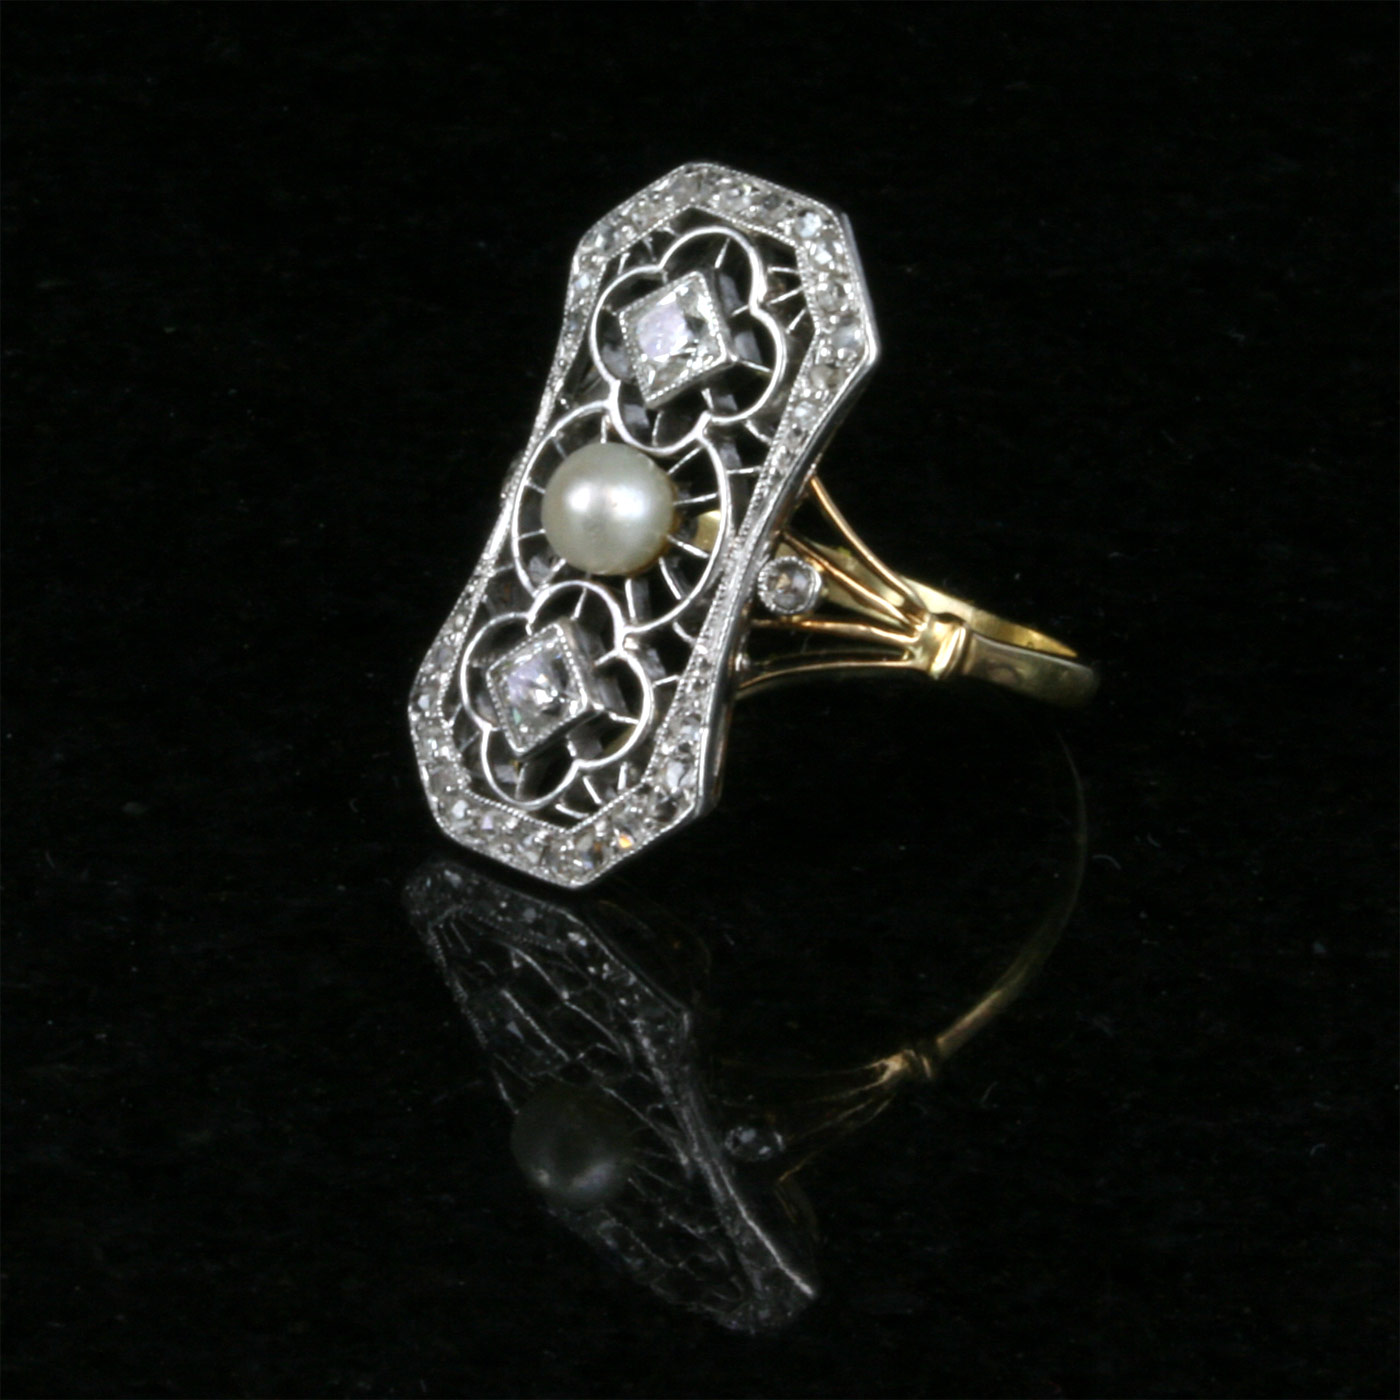 Platinum And Gold Art Deco 1920 S Era Diamond And Pearl Ring